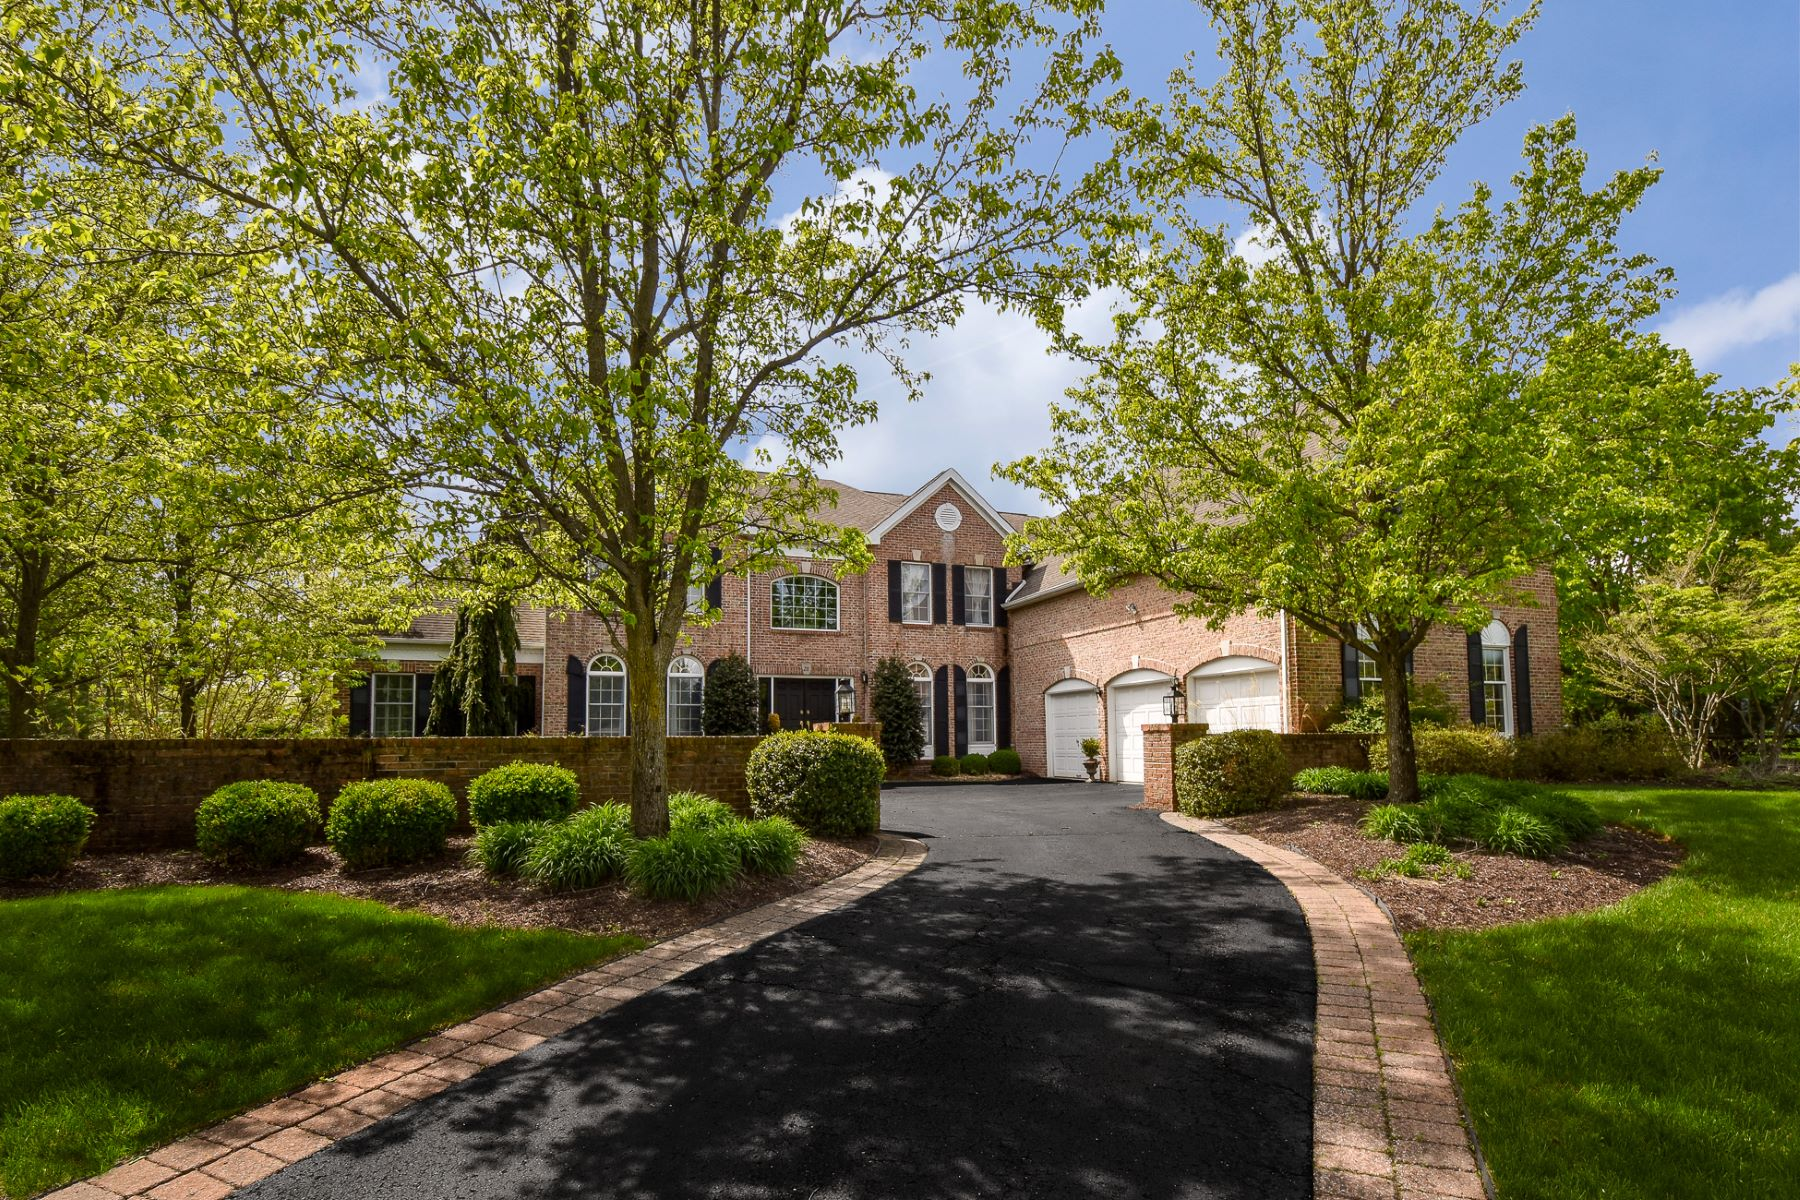 Single Family Homes for Sale at Nothing Short Of Exquisite in Bedens Brook Estates 28 Green Meadow Road, Skillman, New Jersey 08558 United States